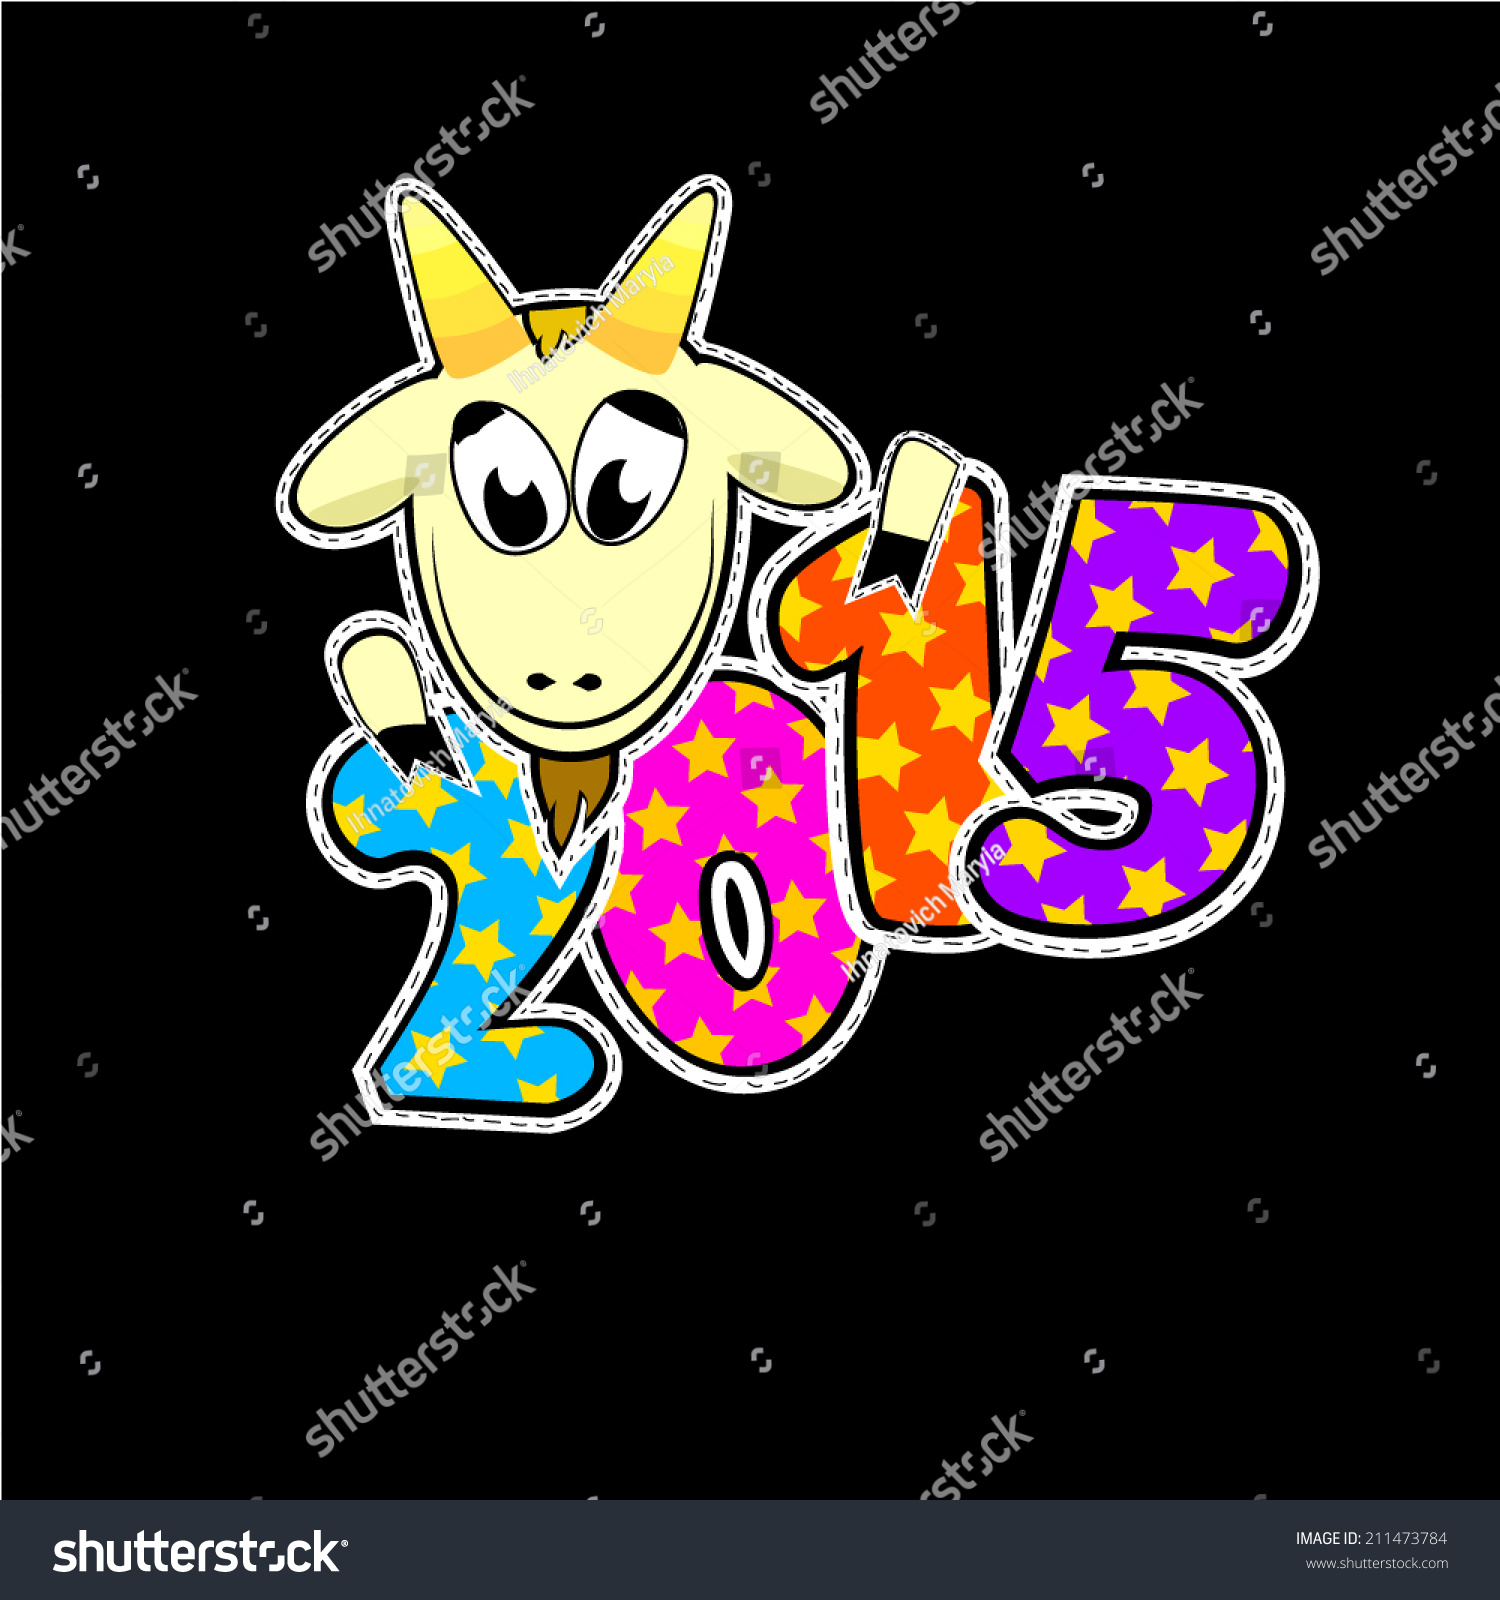 New Year's Eve 2015 Clip Art